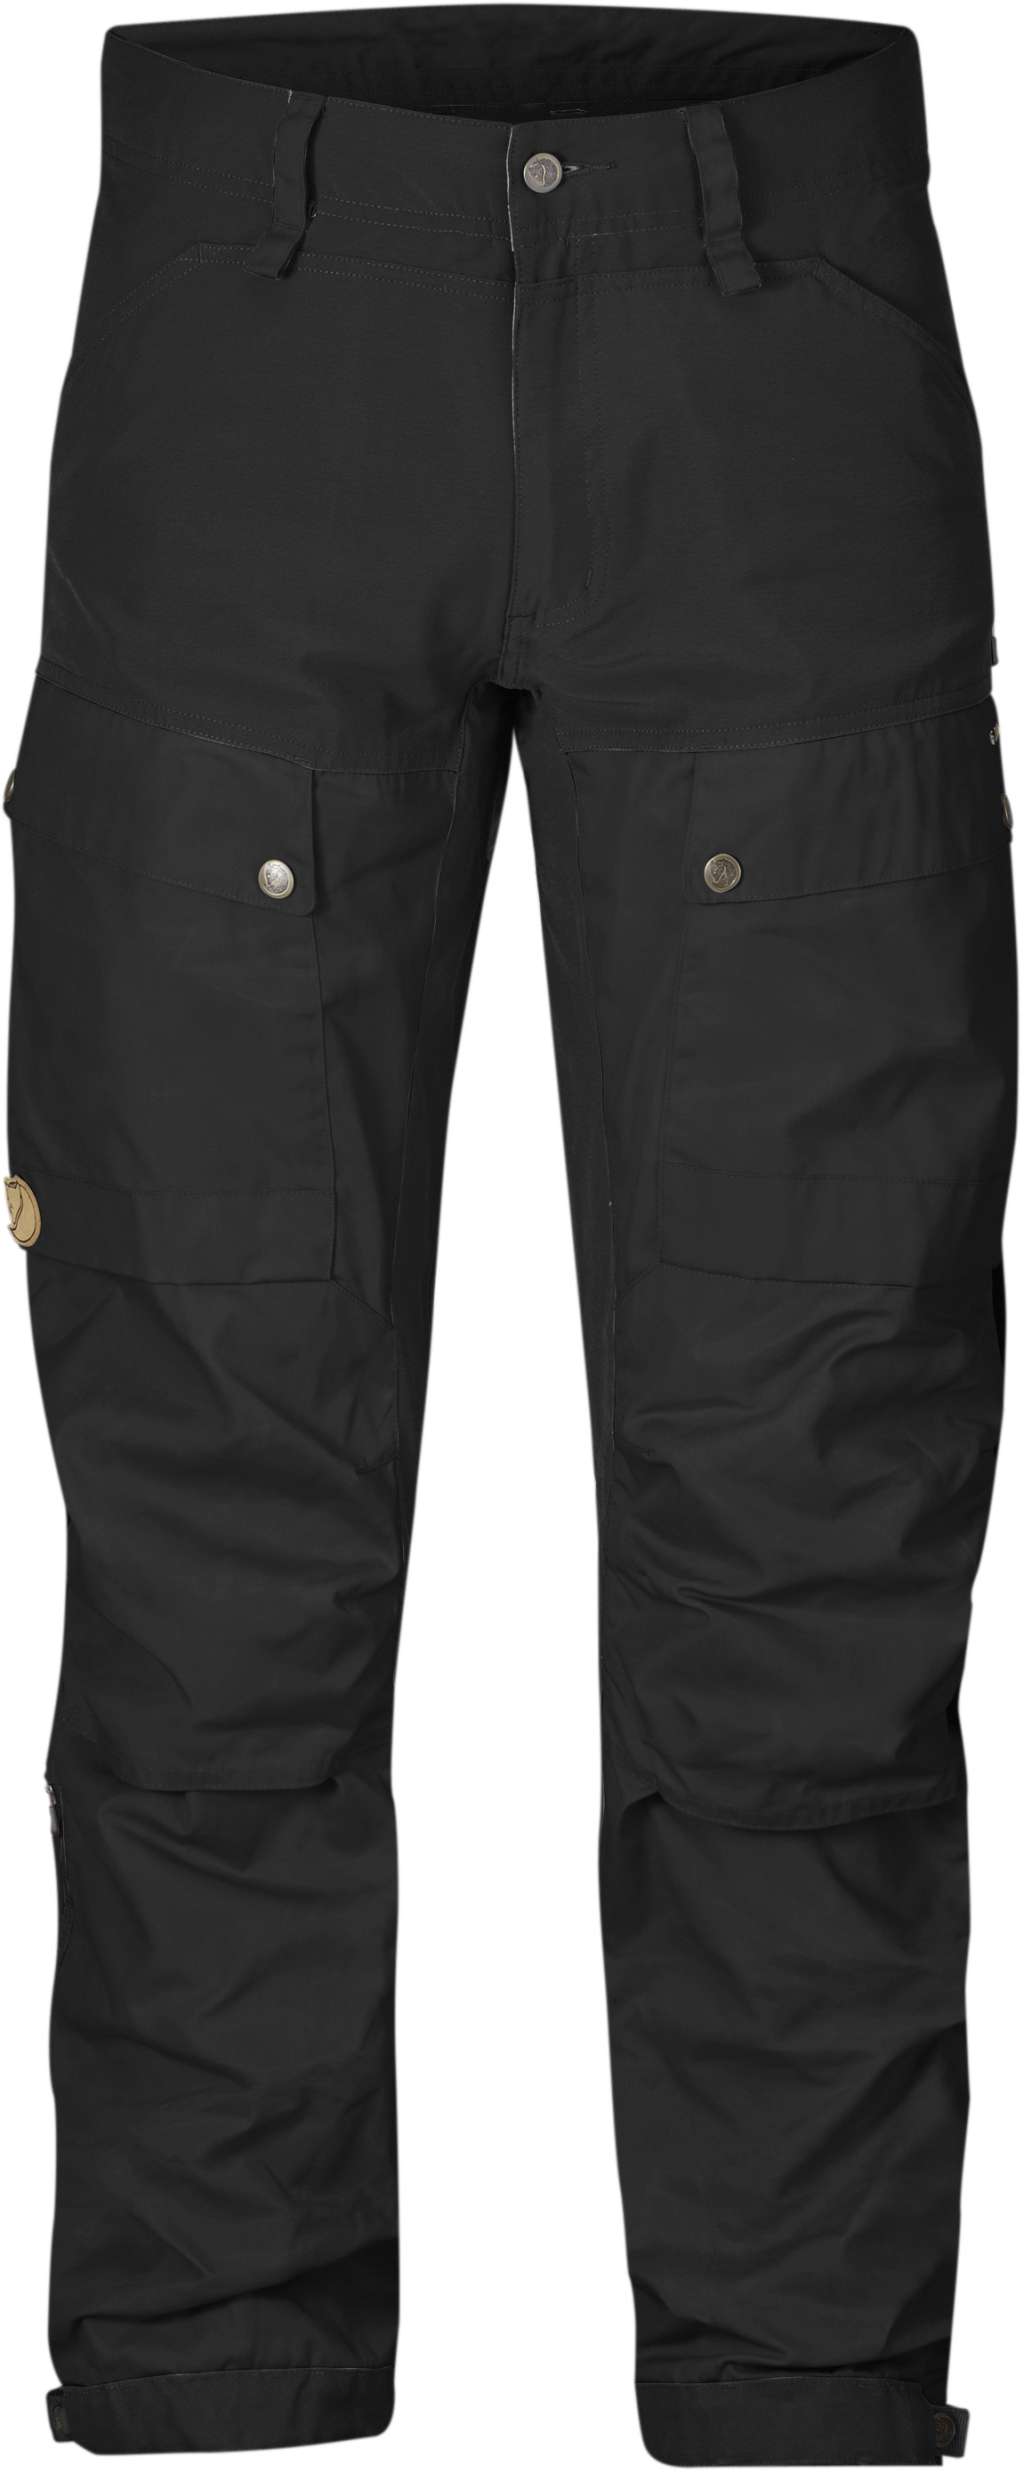 FjallRaven Keb Trousers Long Black-Black-30